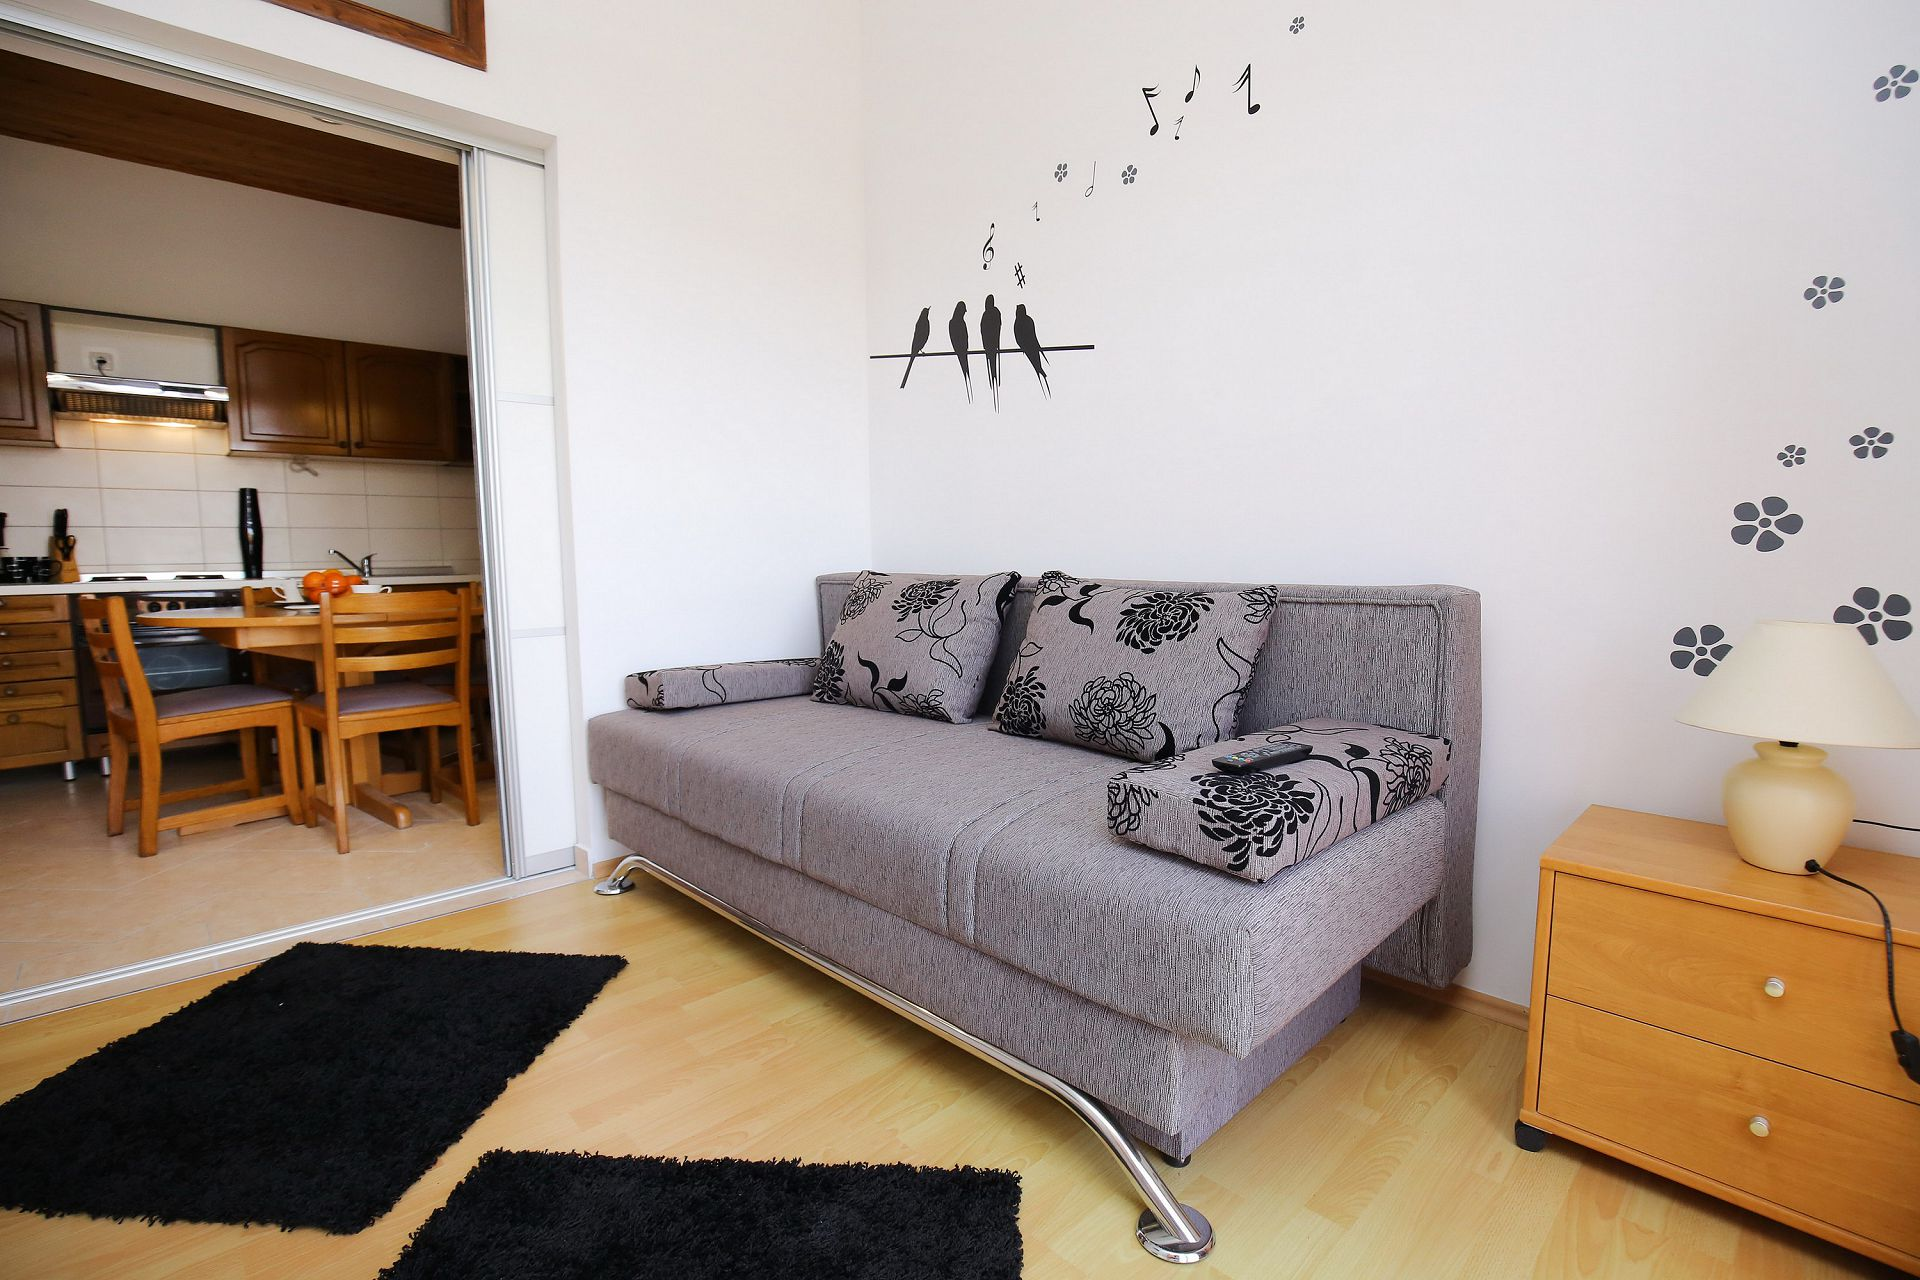 00418ZATZ - Zaton (Zadar) - Apartments Croatia - A3P(2+2): living room